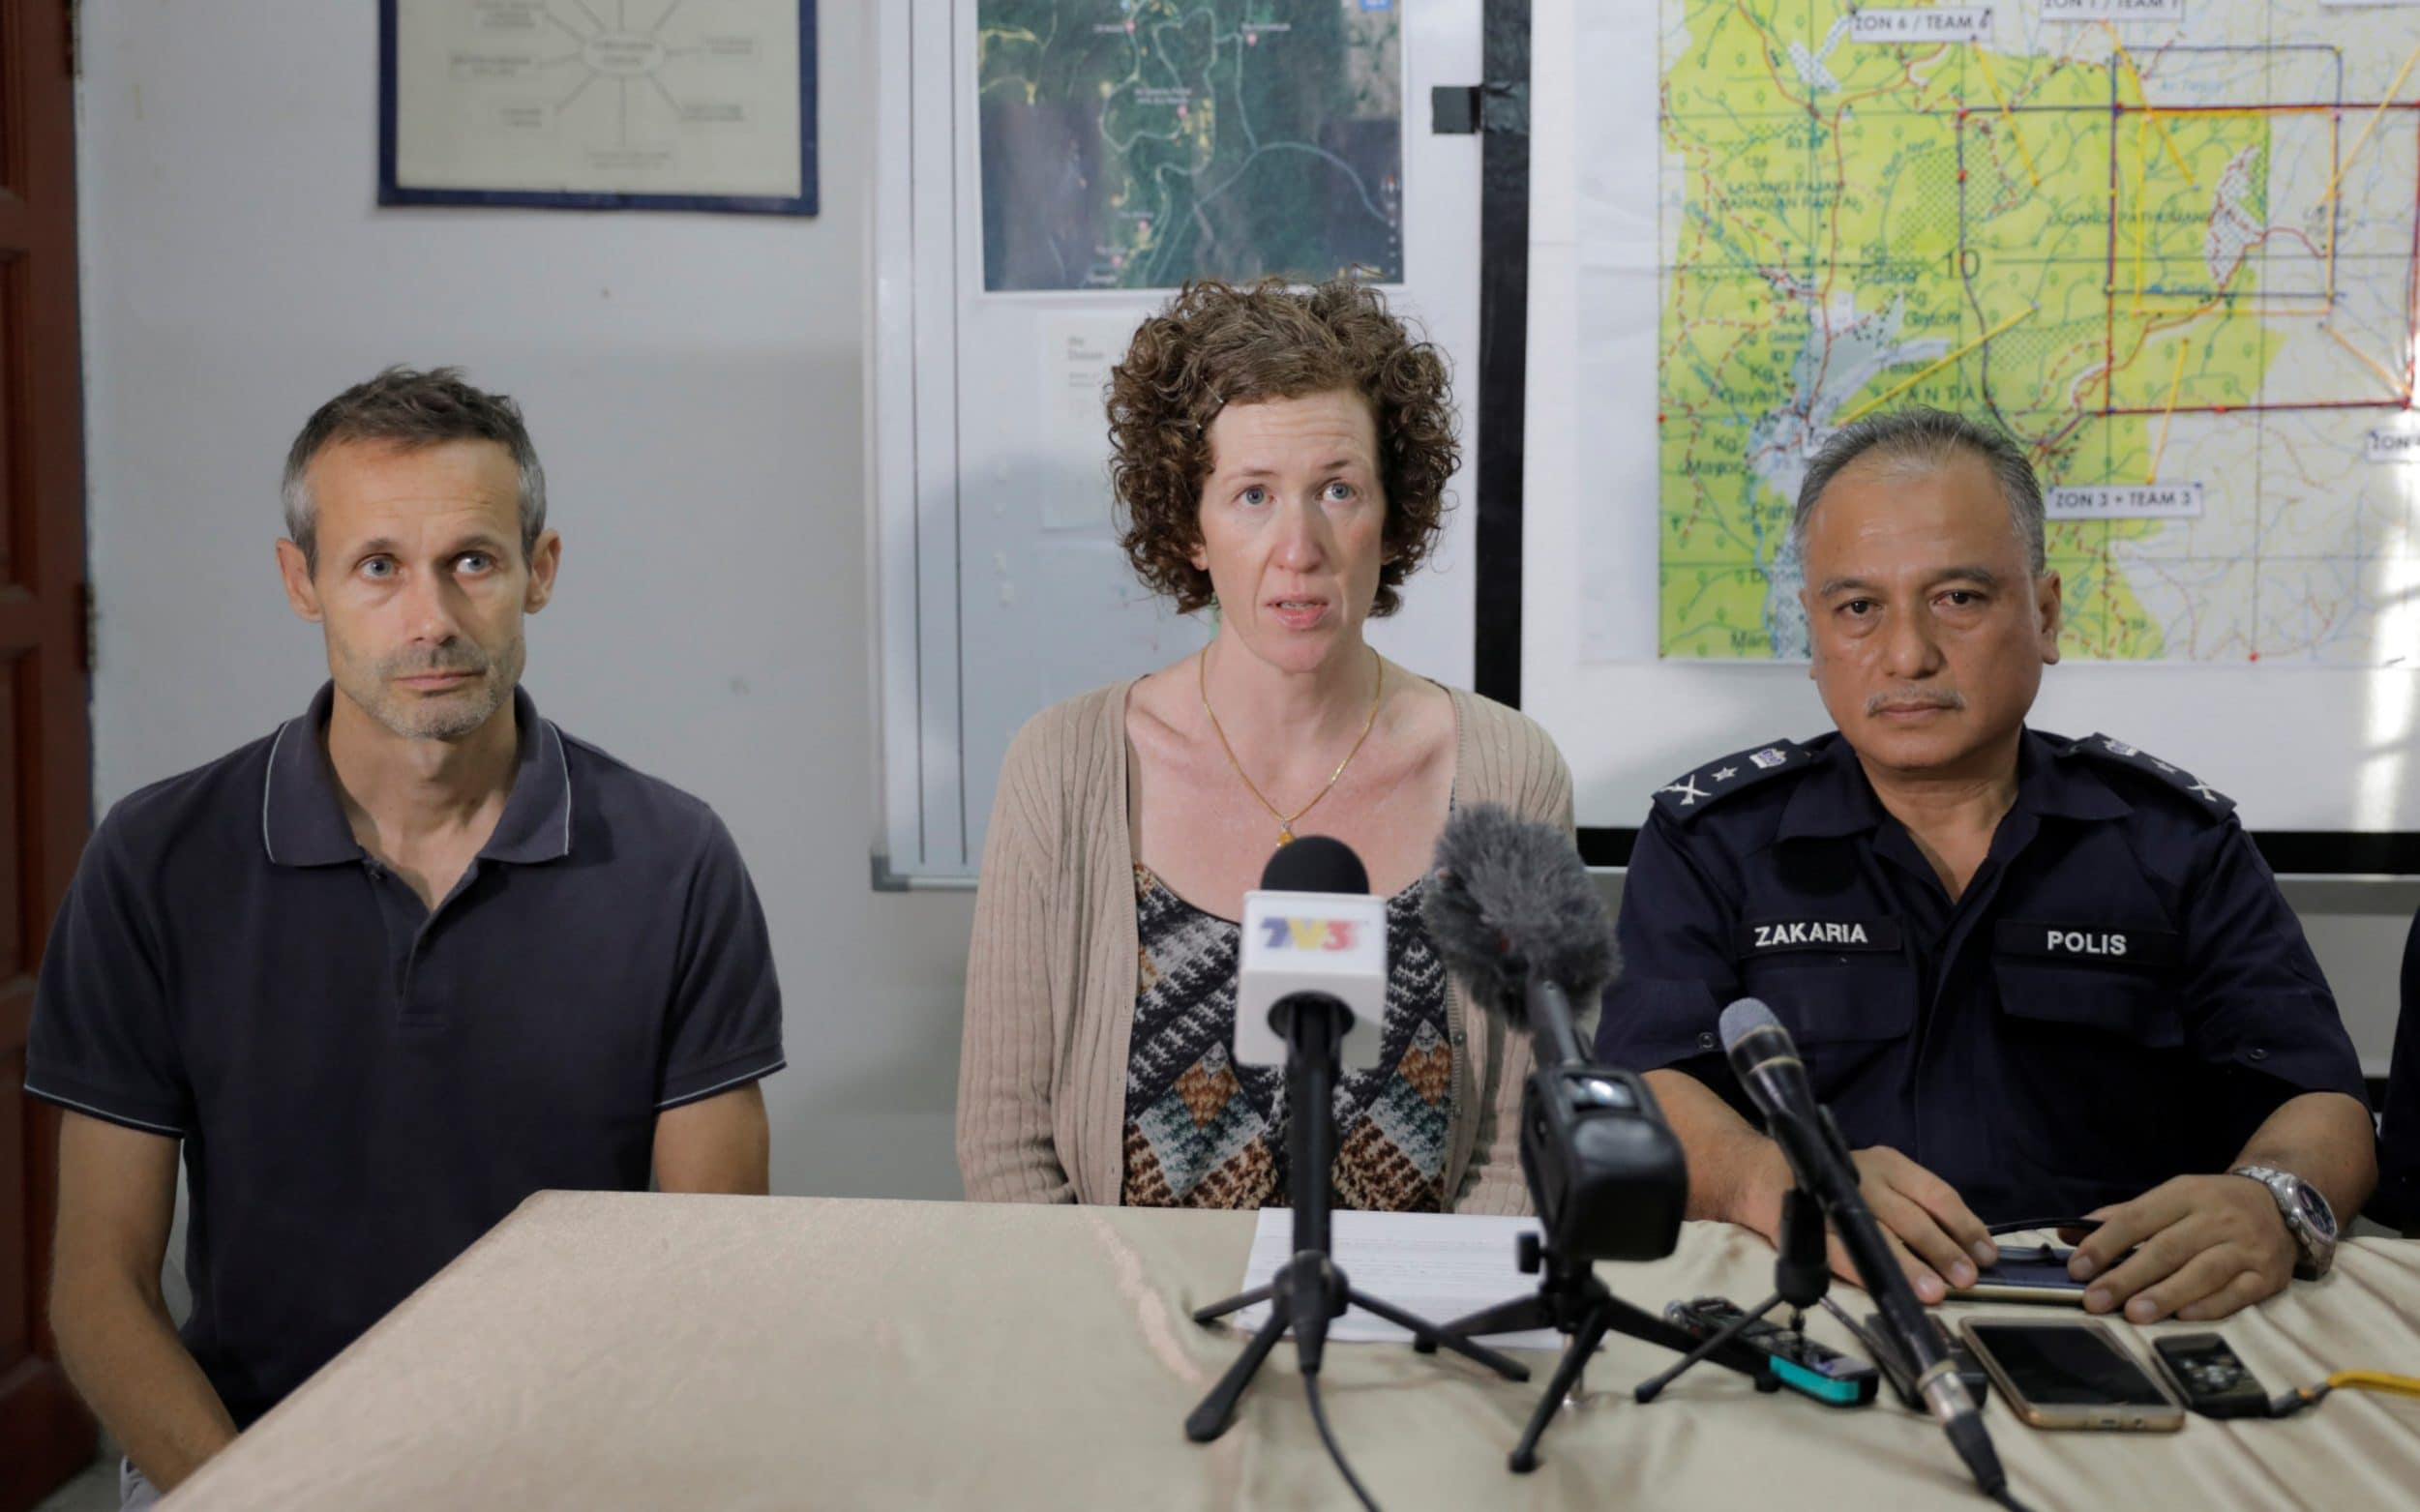 Malaysian shamans conduct rituals to help locate missing Nora Quoirin